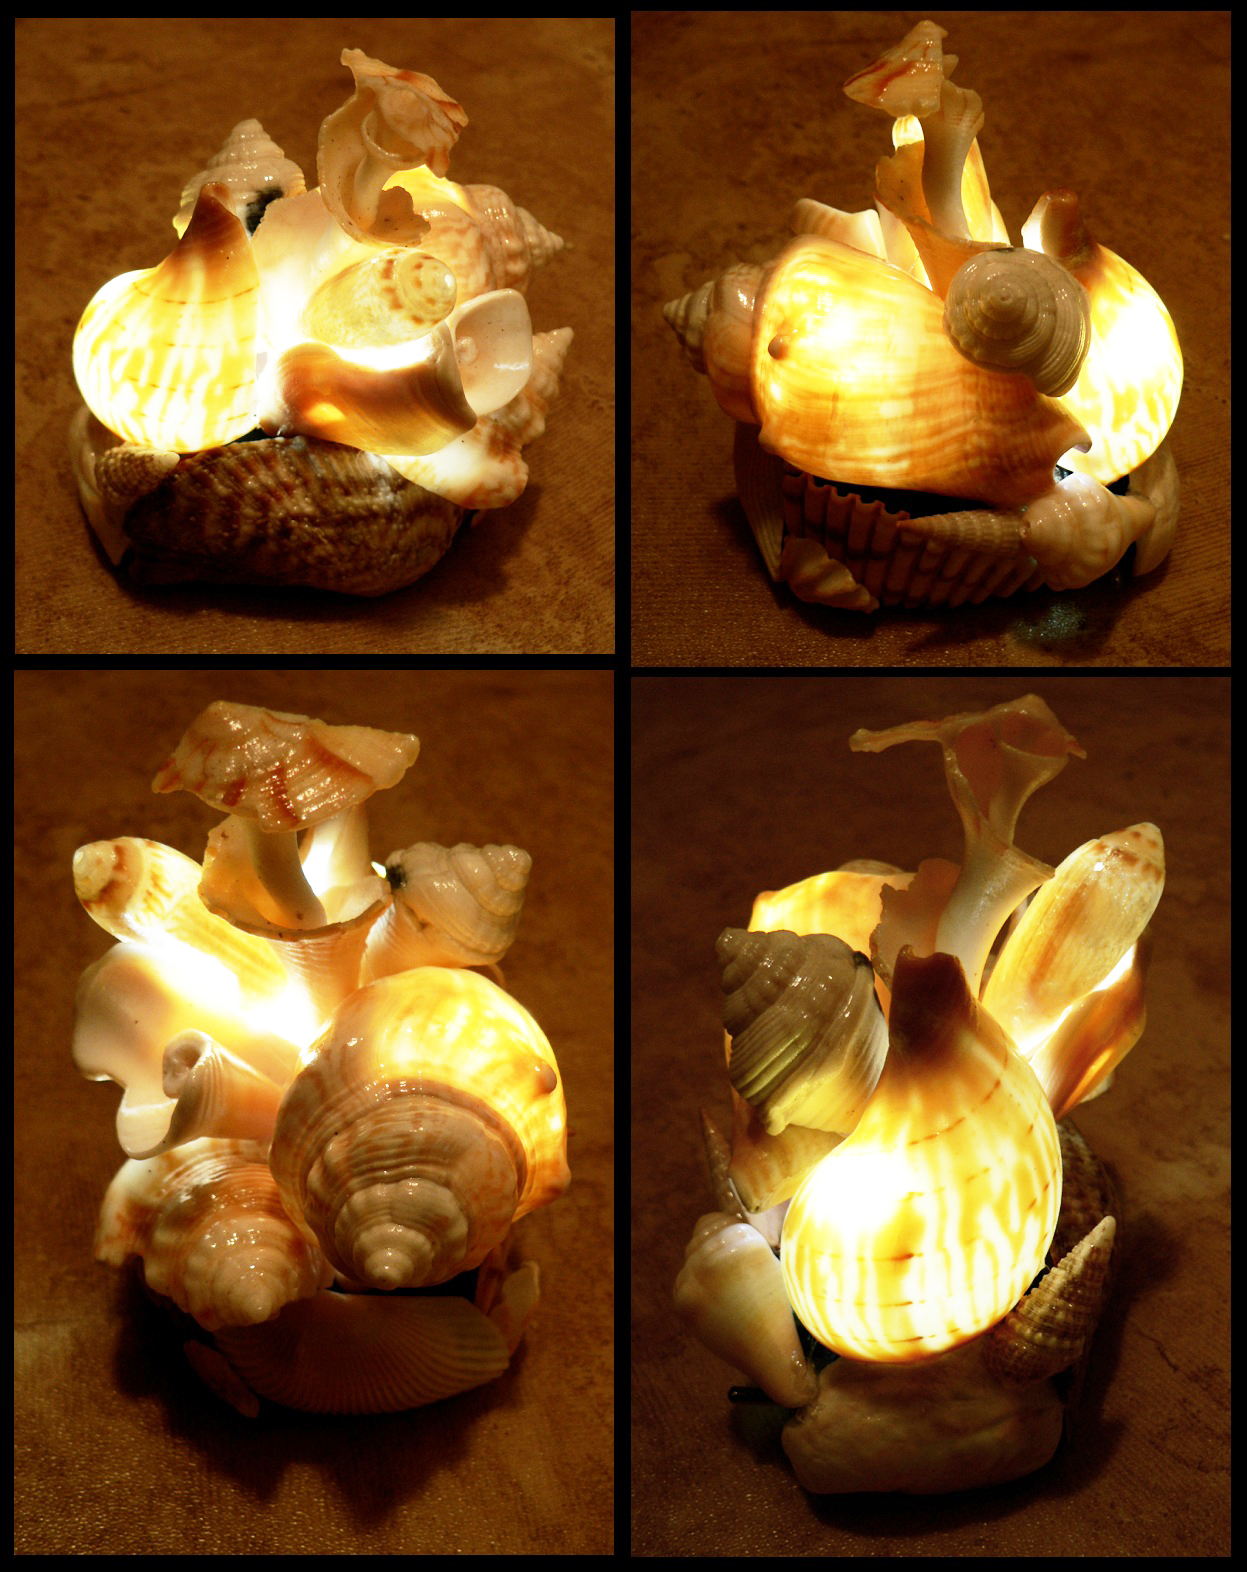 florida_shell_lamp_by_blackmagdalena-d4b9u1k